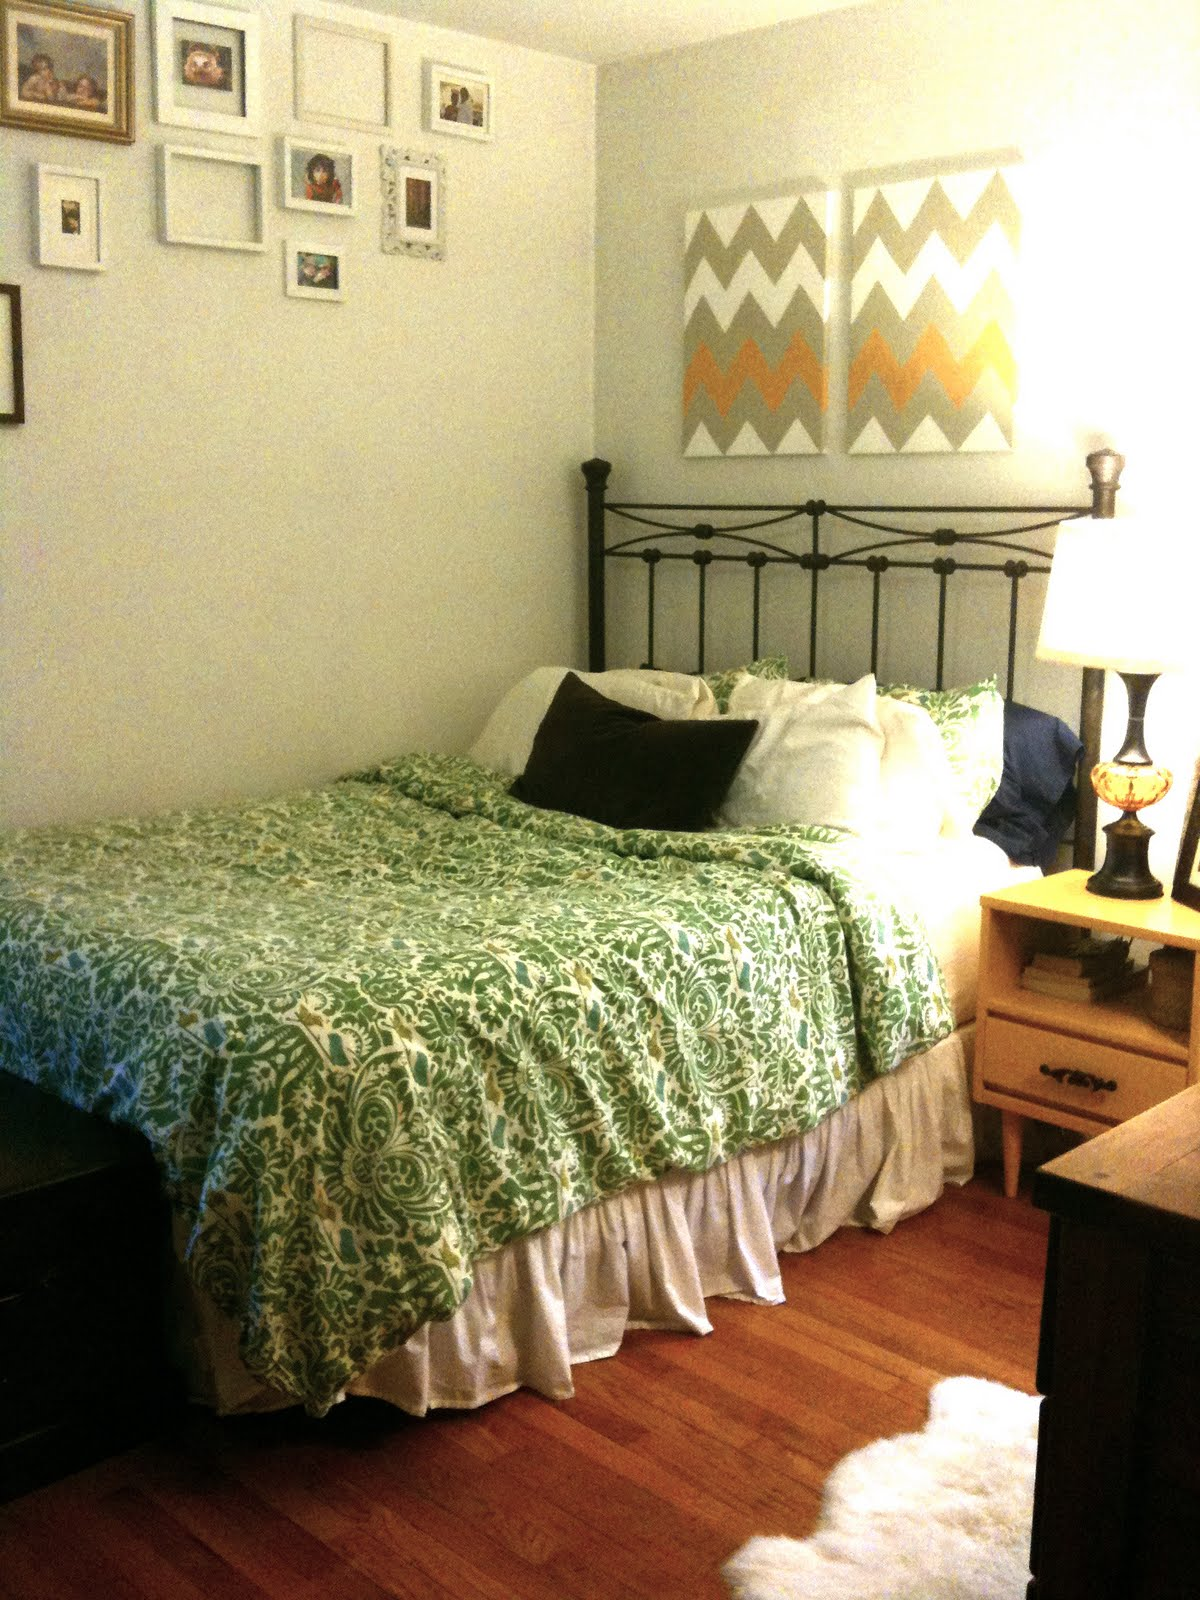 change of scenery: Bedroom mission complete(ish).